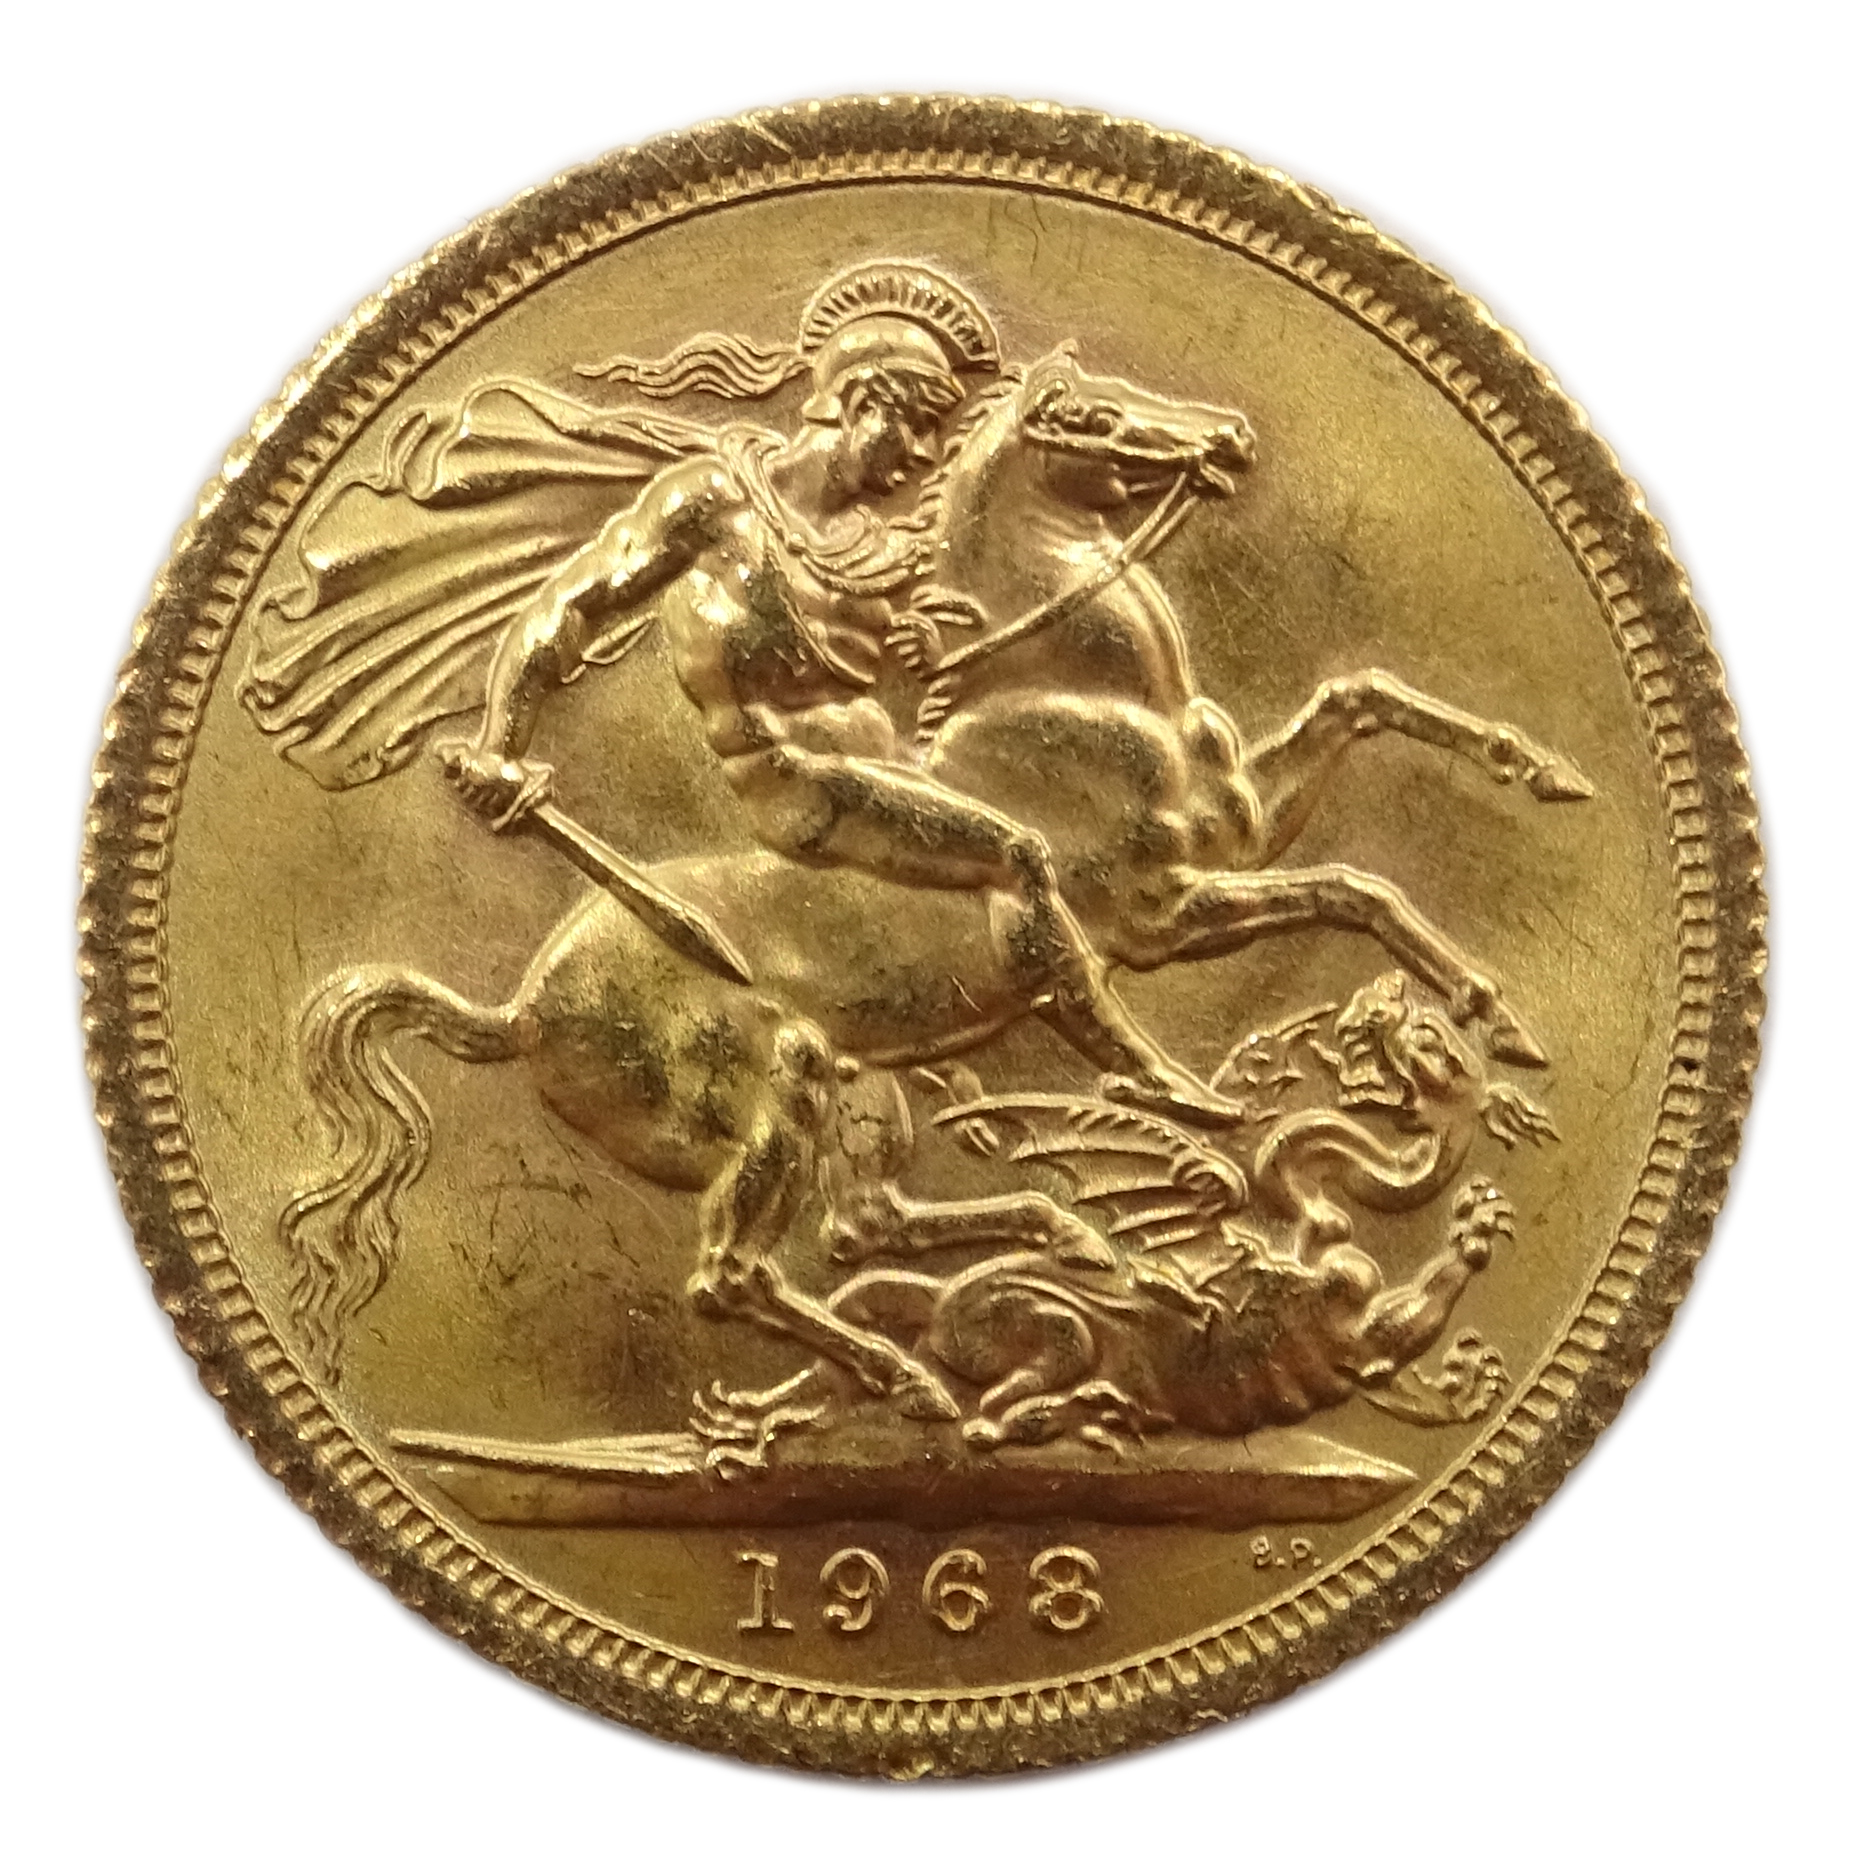 Lot 1037 - 1968 gold full sovereign Condition Report & Further Details <a href='//www.